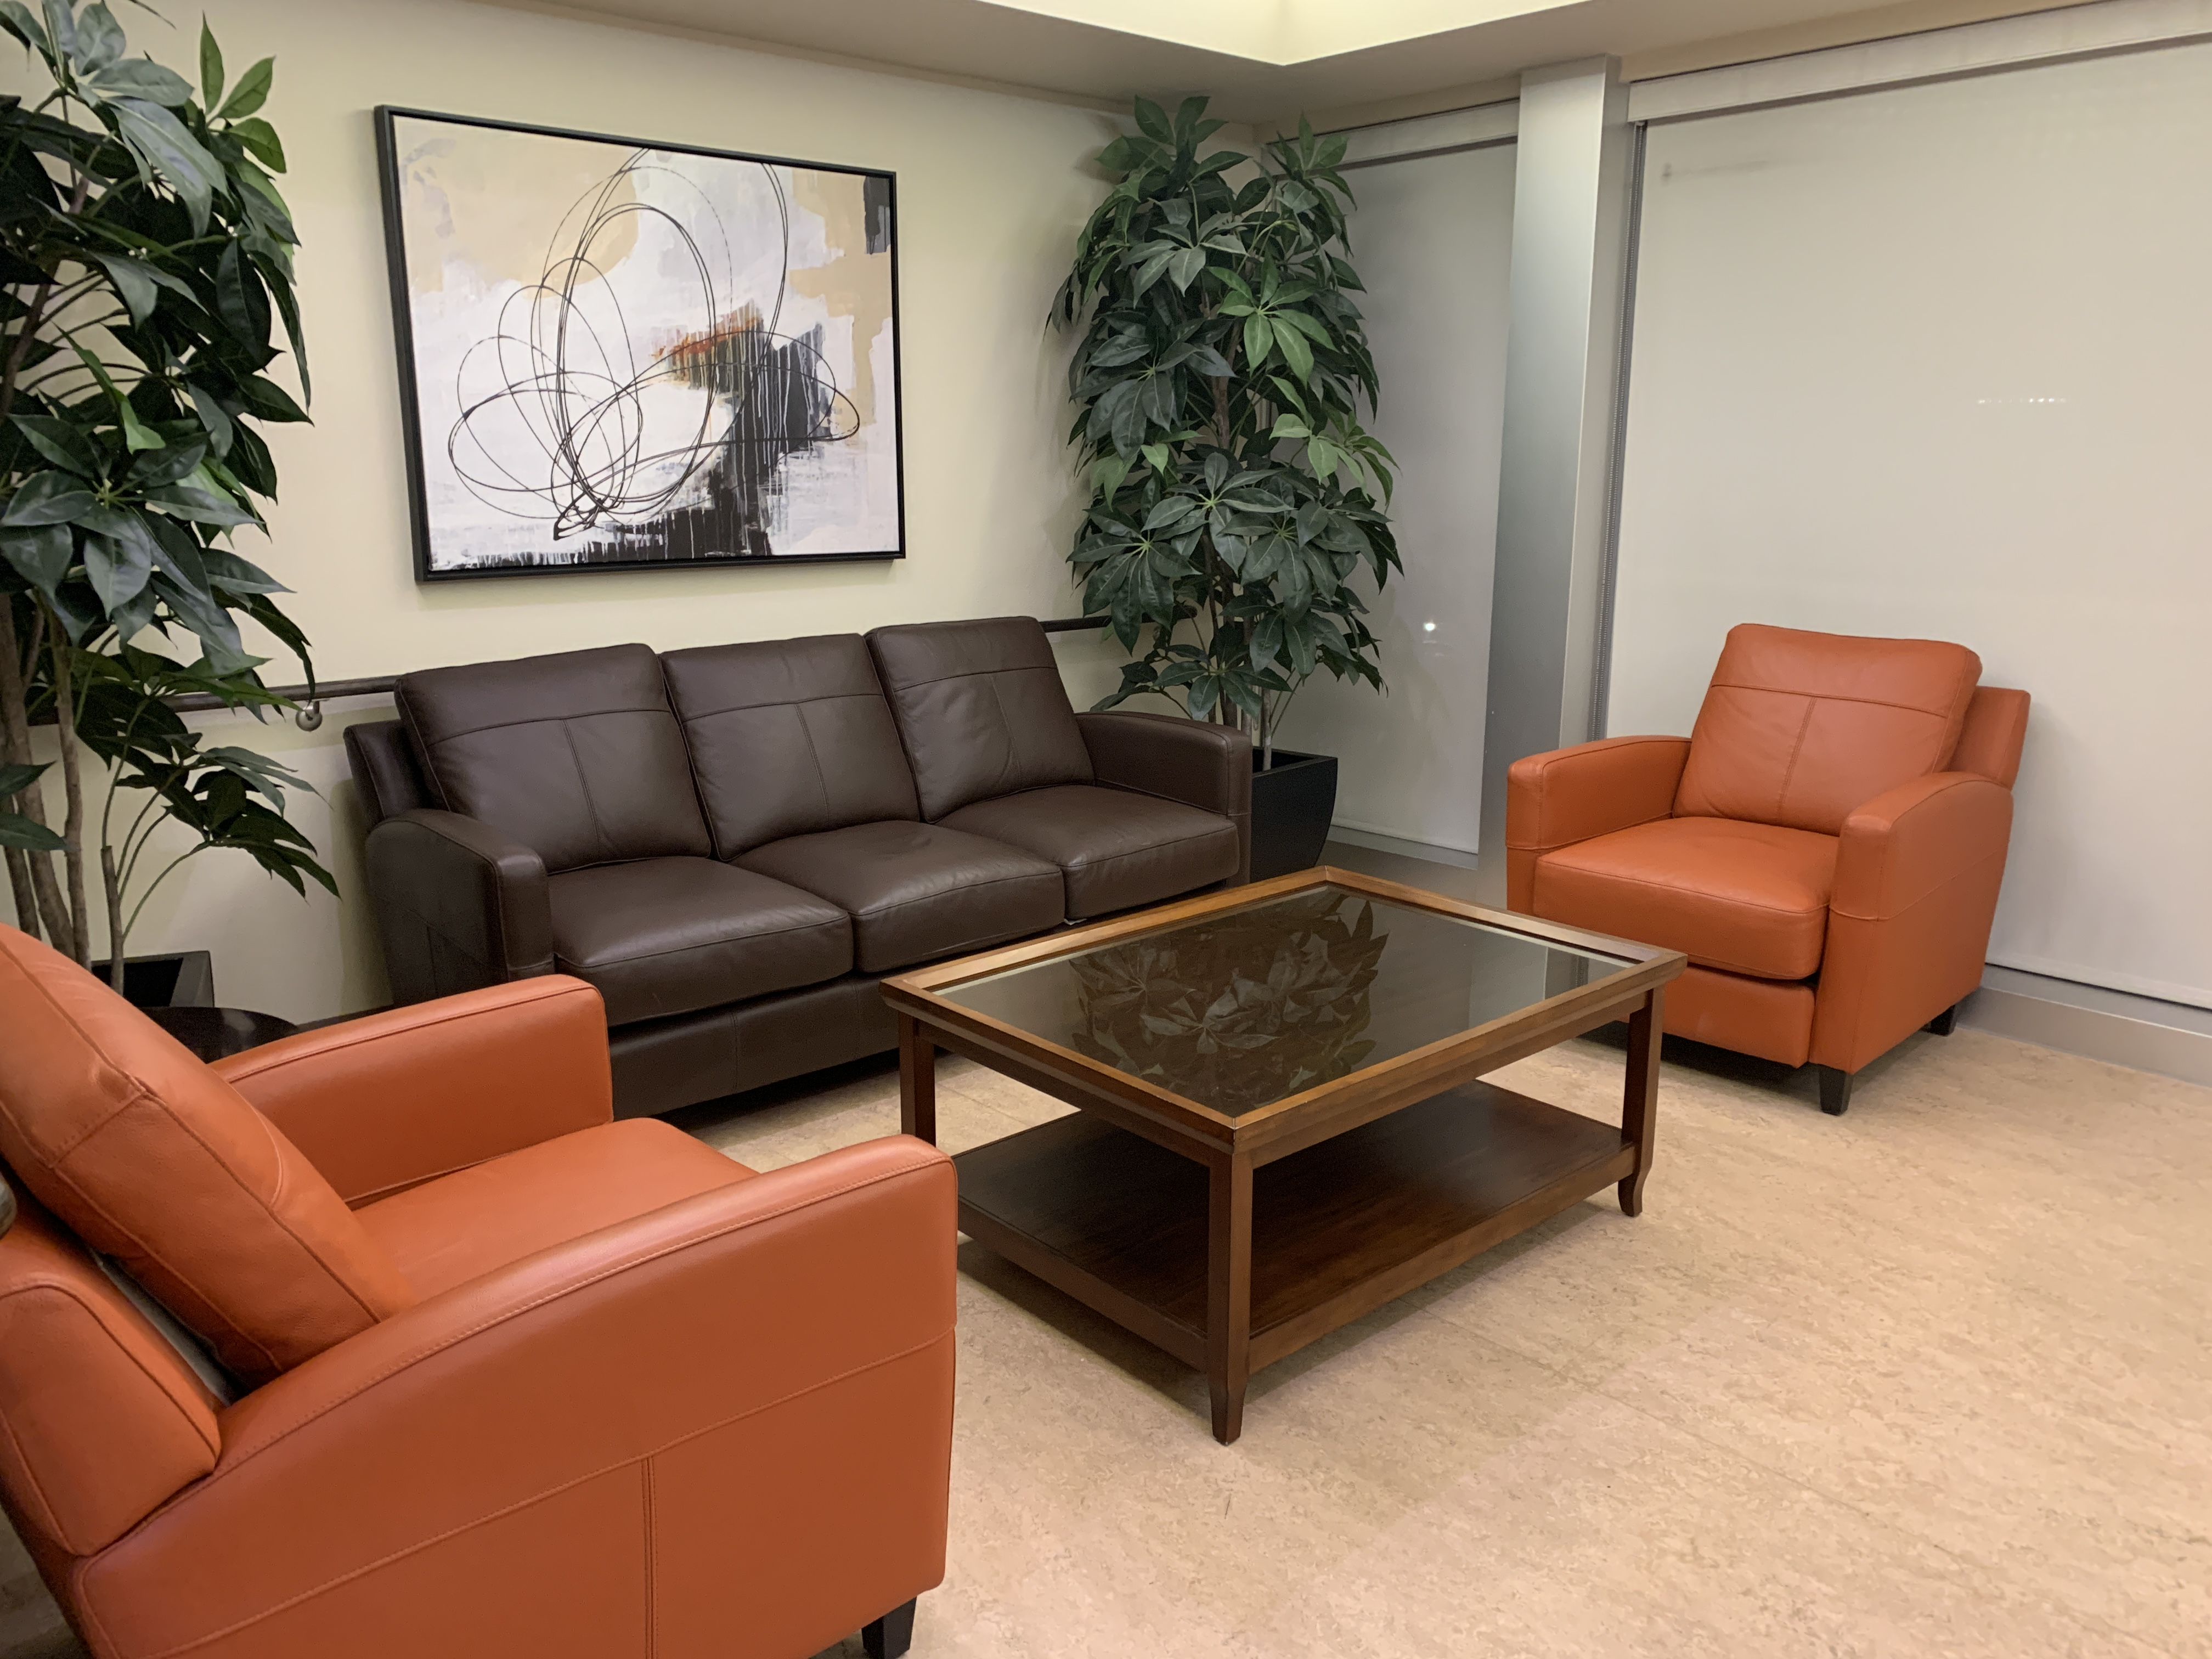 willis avenue lounge area, one is located of each floor. Room with sofa and chairs with coffee table/ decroative art and plants in room